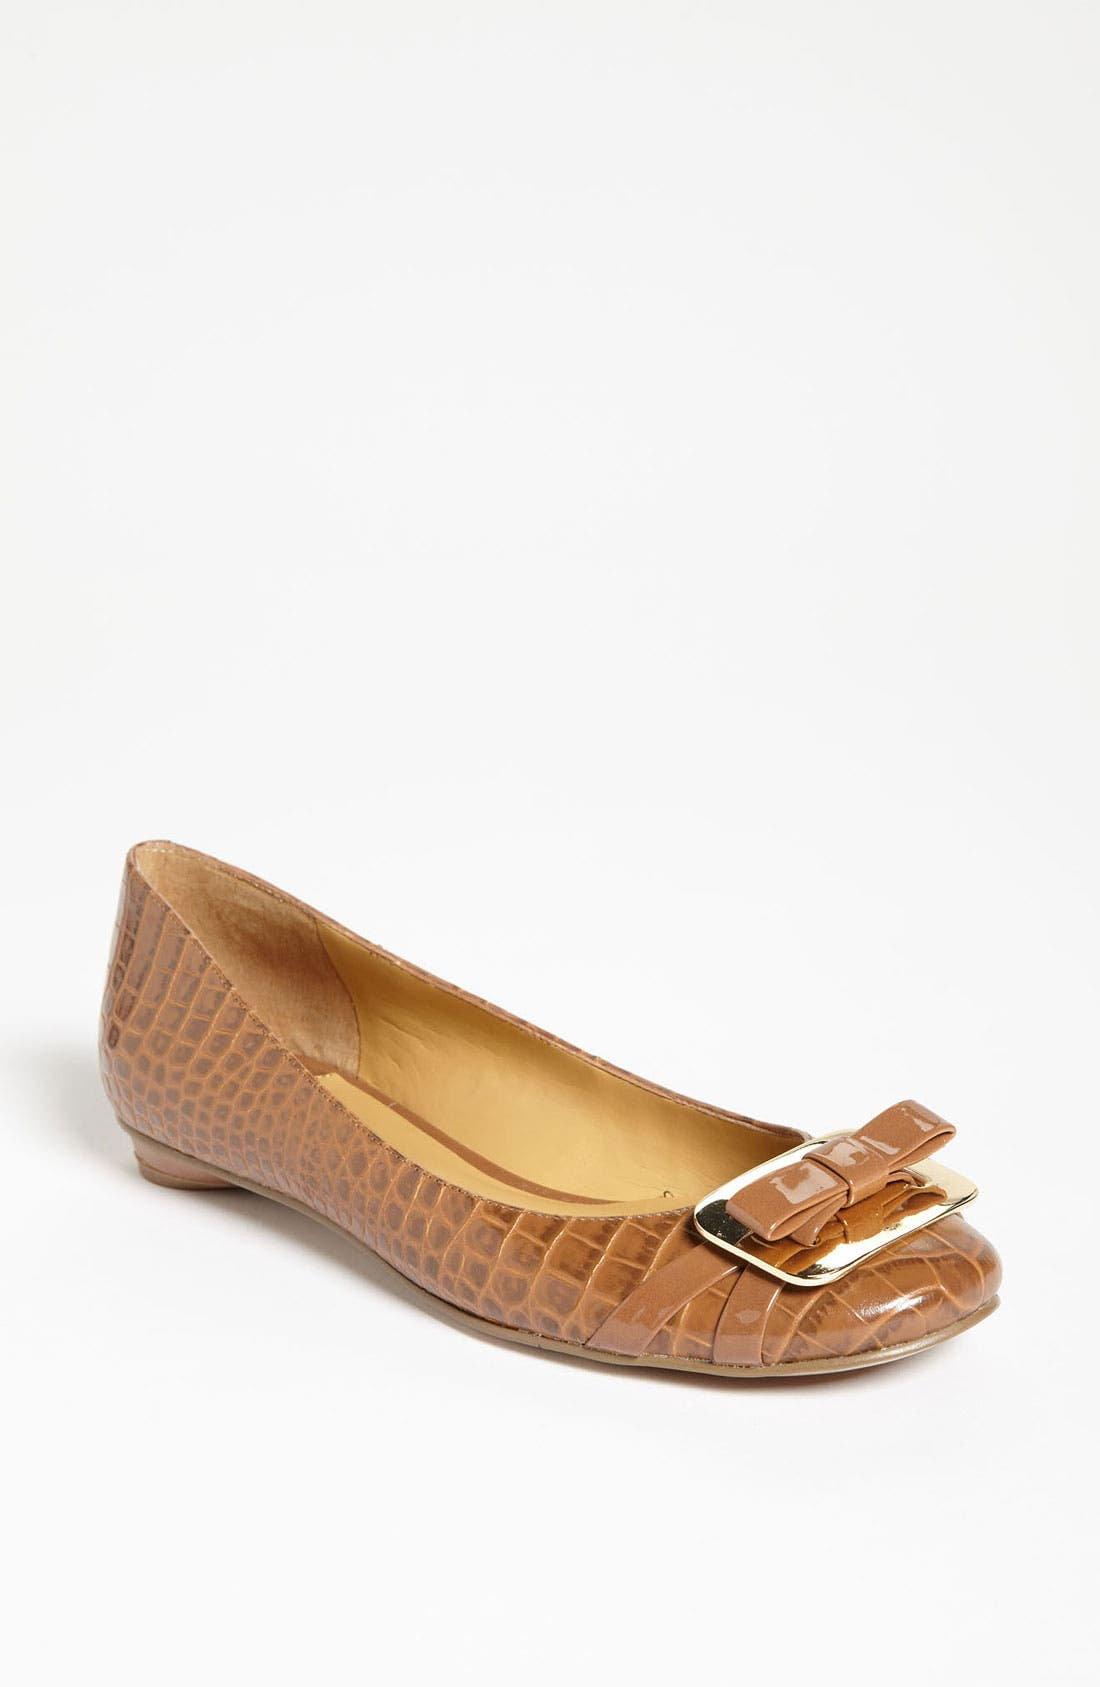 Main Image - Nine West 'Rueben' Flat